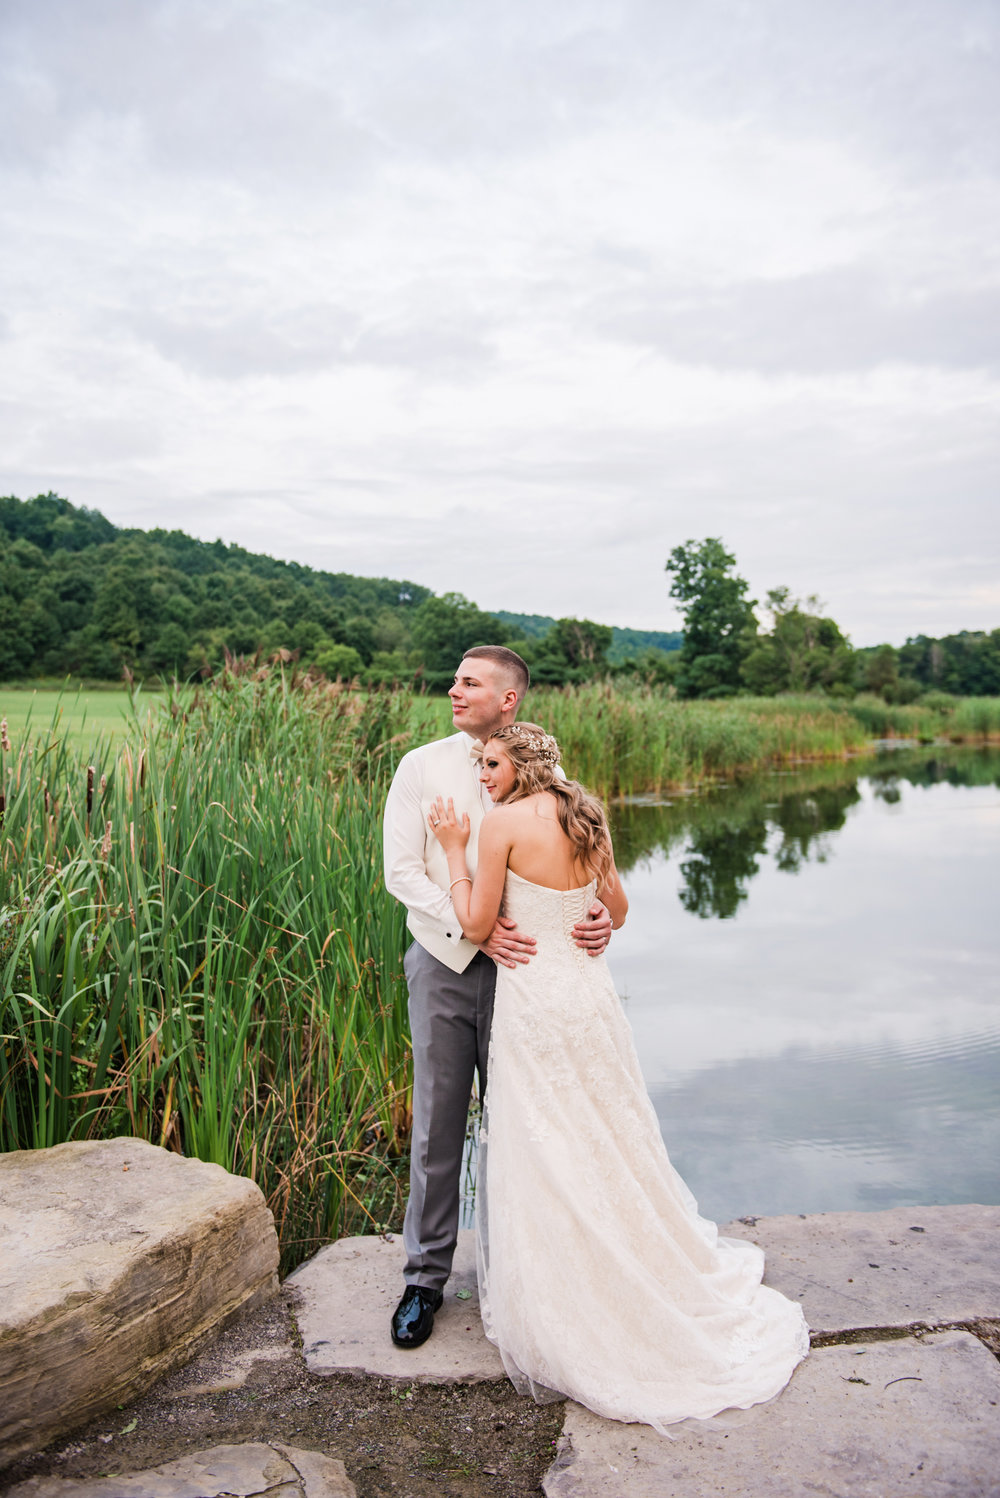 Wolf_Oak_Acres_Central_NY_Wedding_JILL_STUDIO_Rochester_NY_Photographer_DSC_8985.jpg